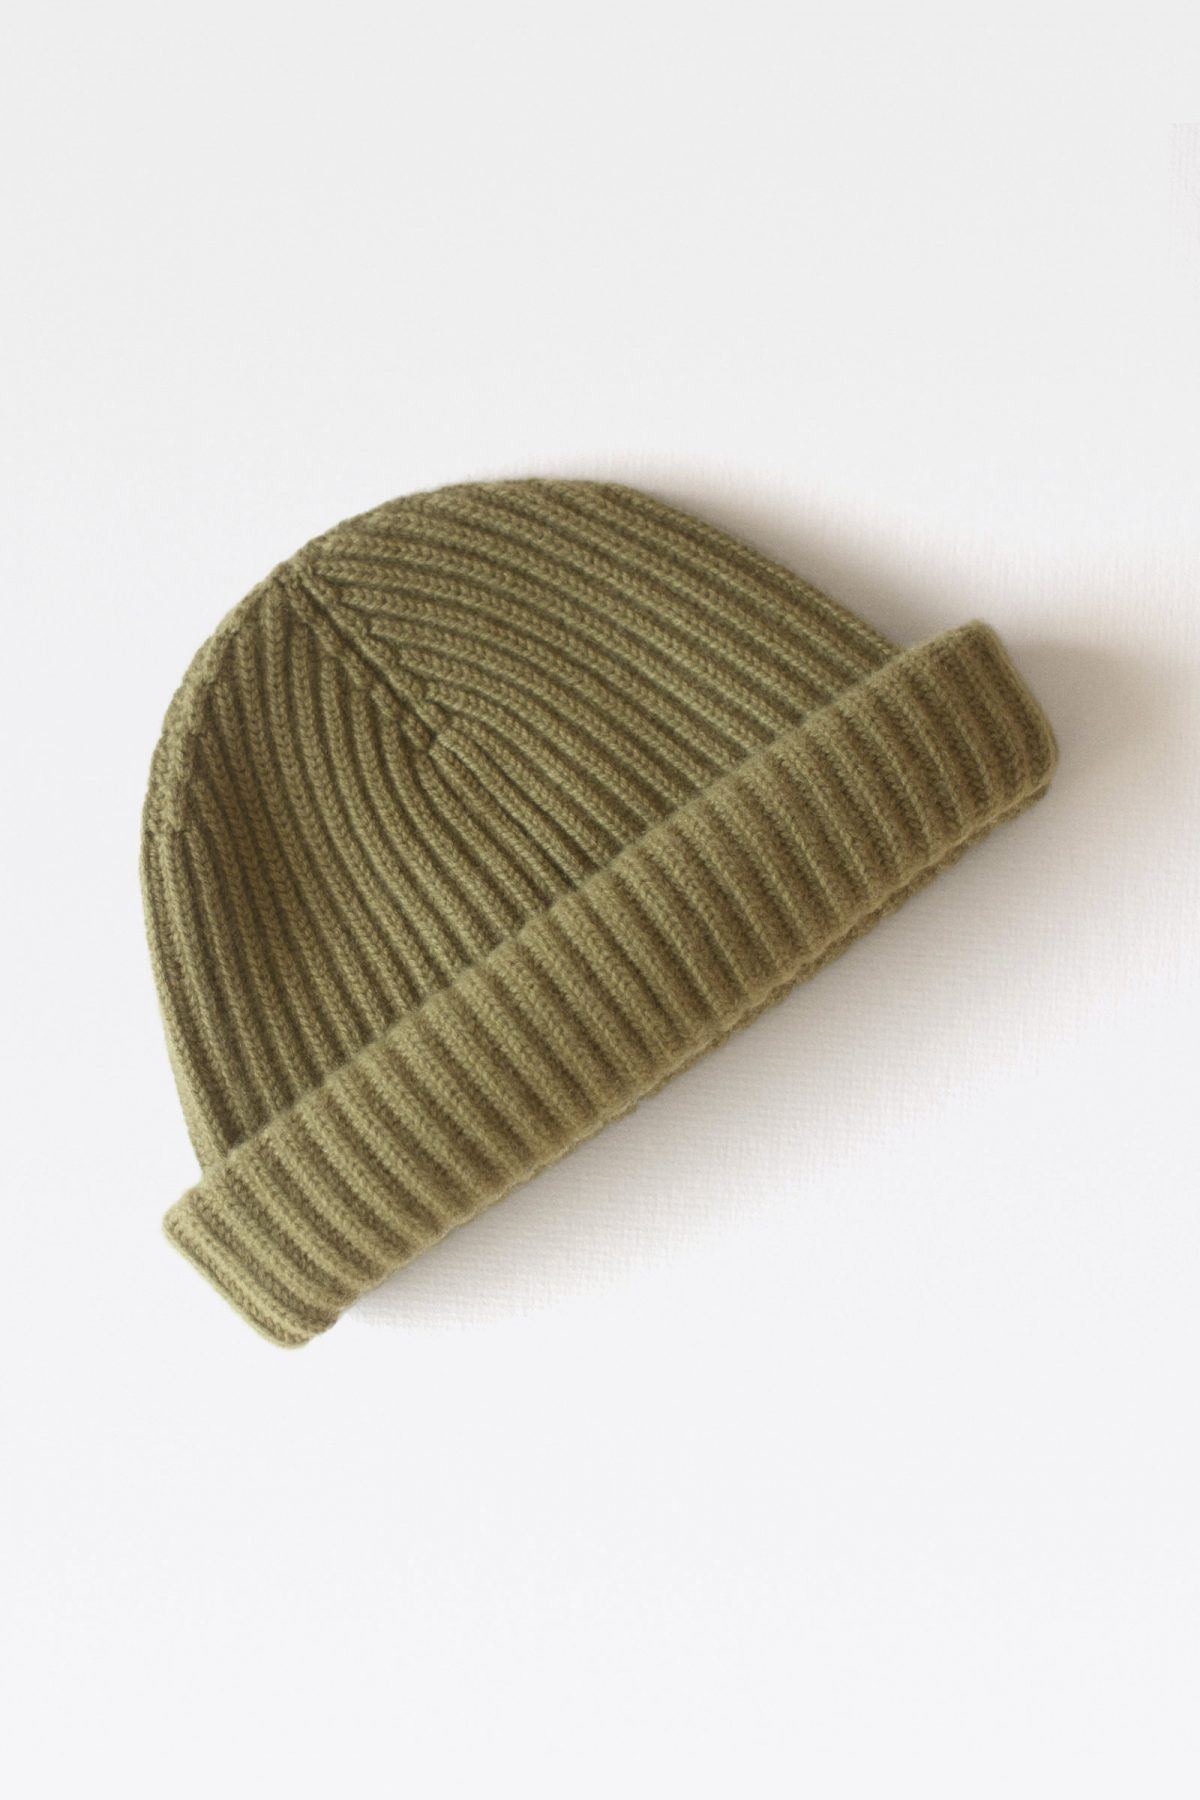 100% Pure Luxury Cashmere Wool Knit Beanie with Cardigan Stitch Ribbed - Made In Scotland - Algae Green - Collection 001 - Riachi Studio